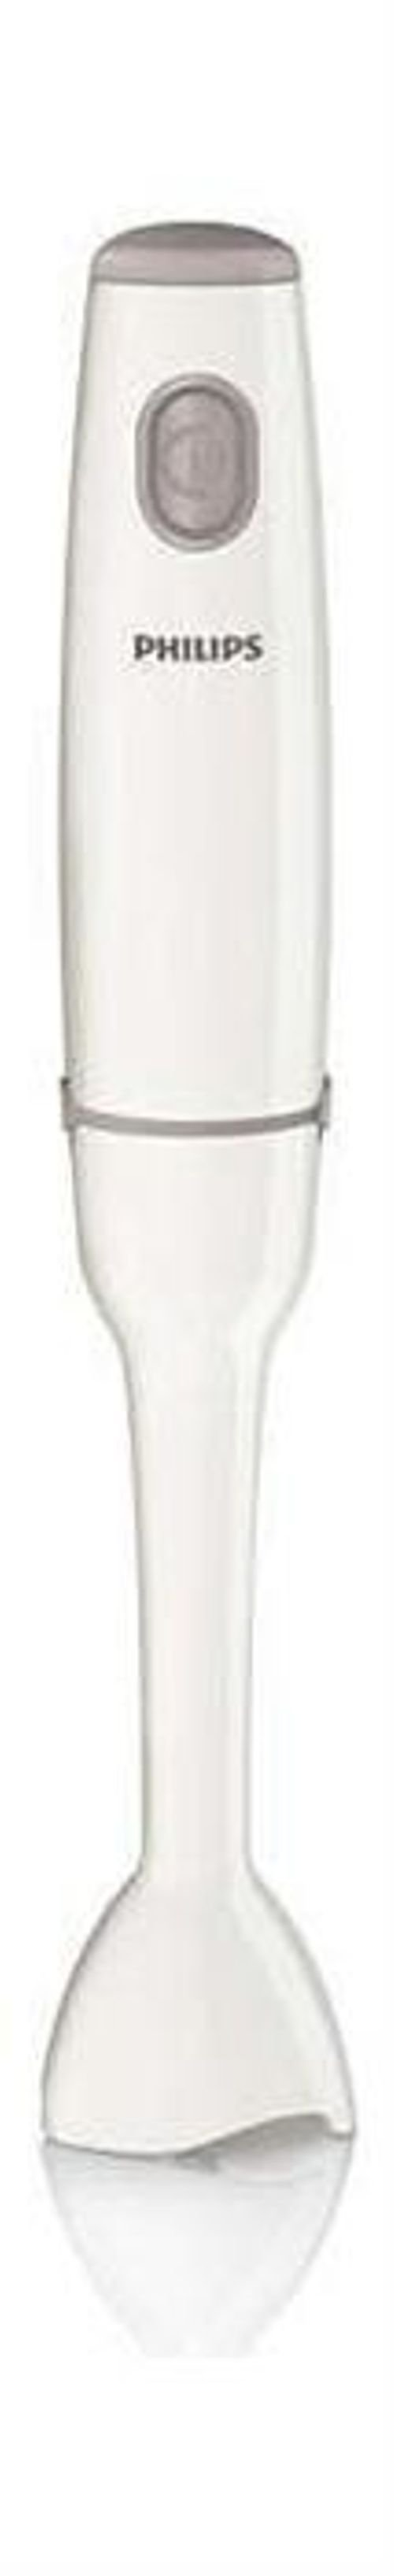 Philips Daily Collection Hand Blender HR1600/00 model